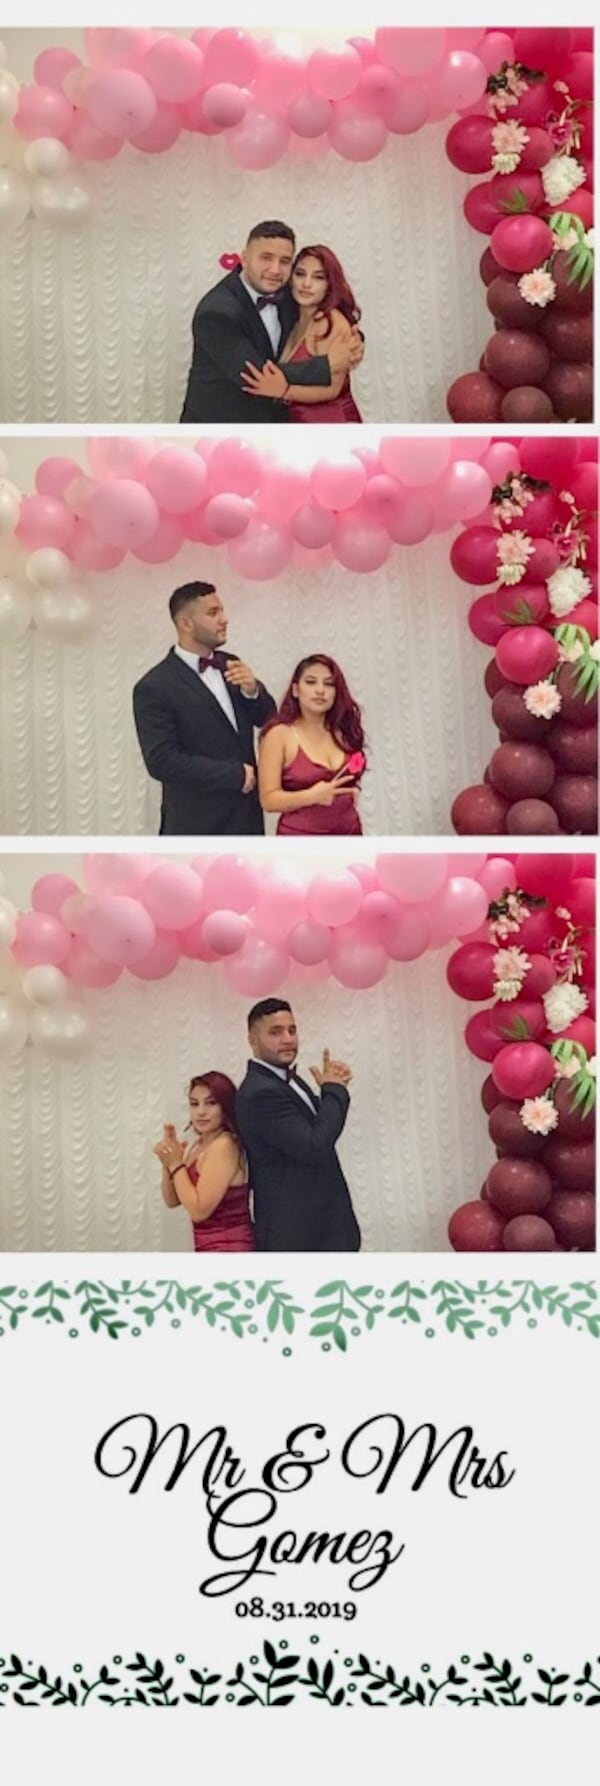 Photo Booth and Balloon Backdrop - 3 Hours c06576bc-2ffd-433c-9ba6-d8a31af8f8da